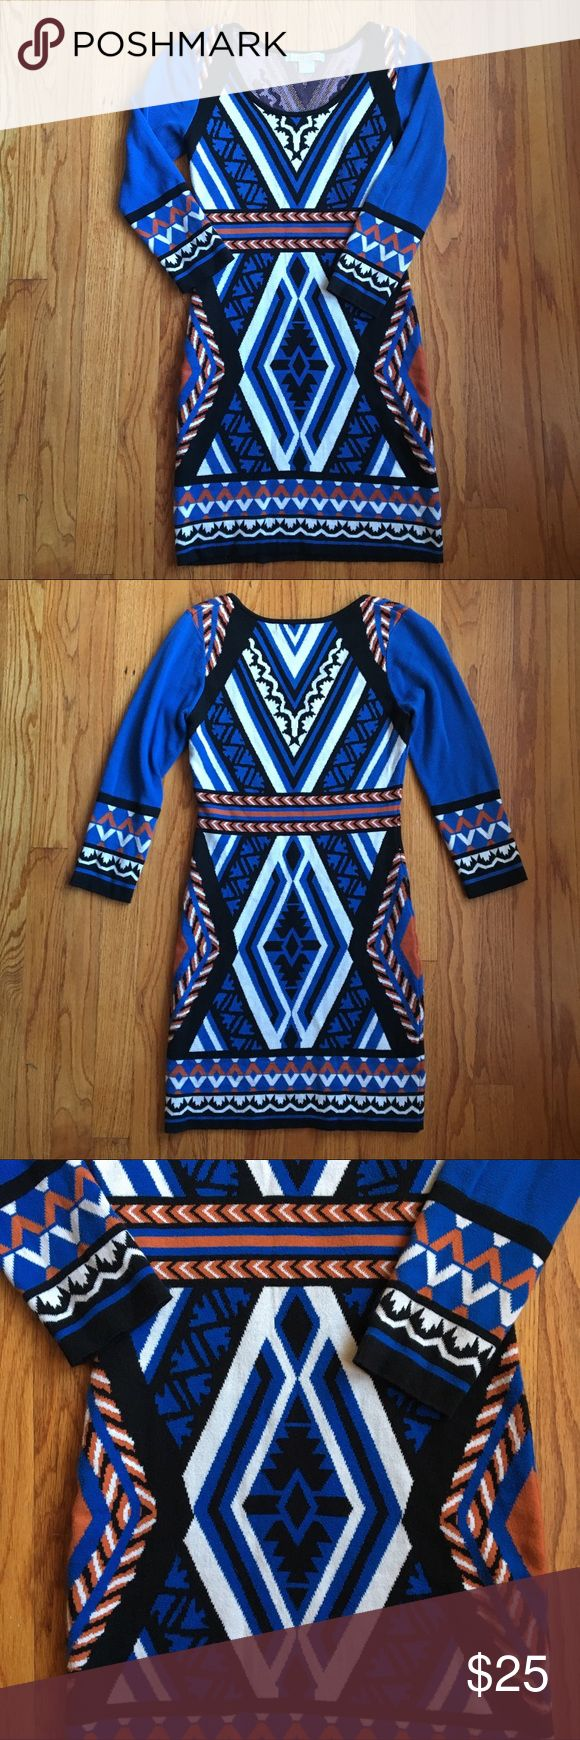 "NWOT Flying Tomato Blue Aztec Print Dress Extremely flattering form fitting dress. Bodycon style with multicolored Aztec print. No flaws. 33"" length. Flying Tomato Dresses"